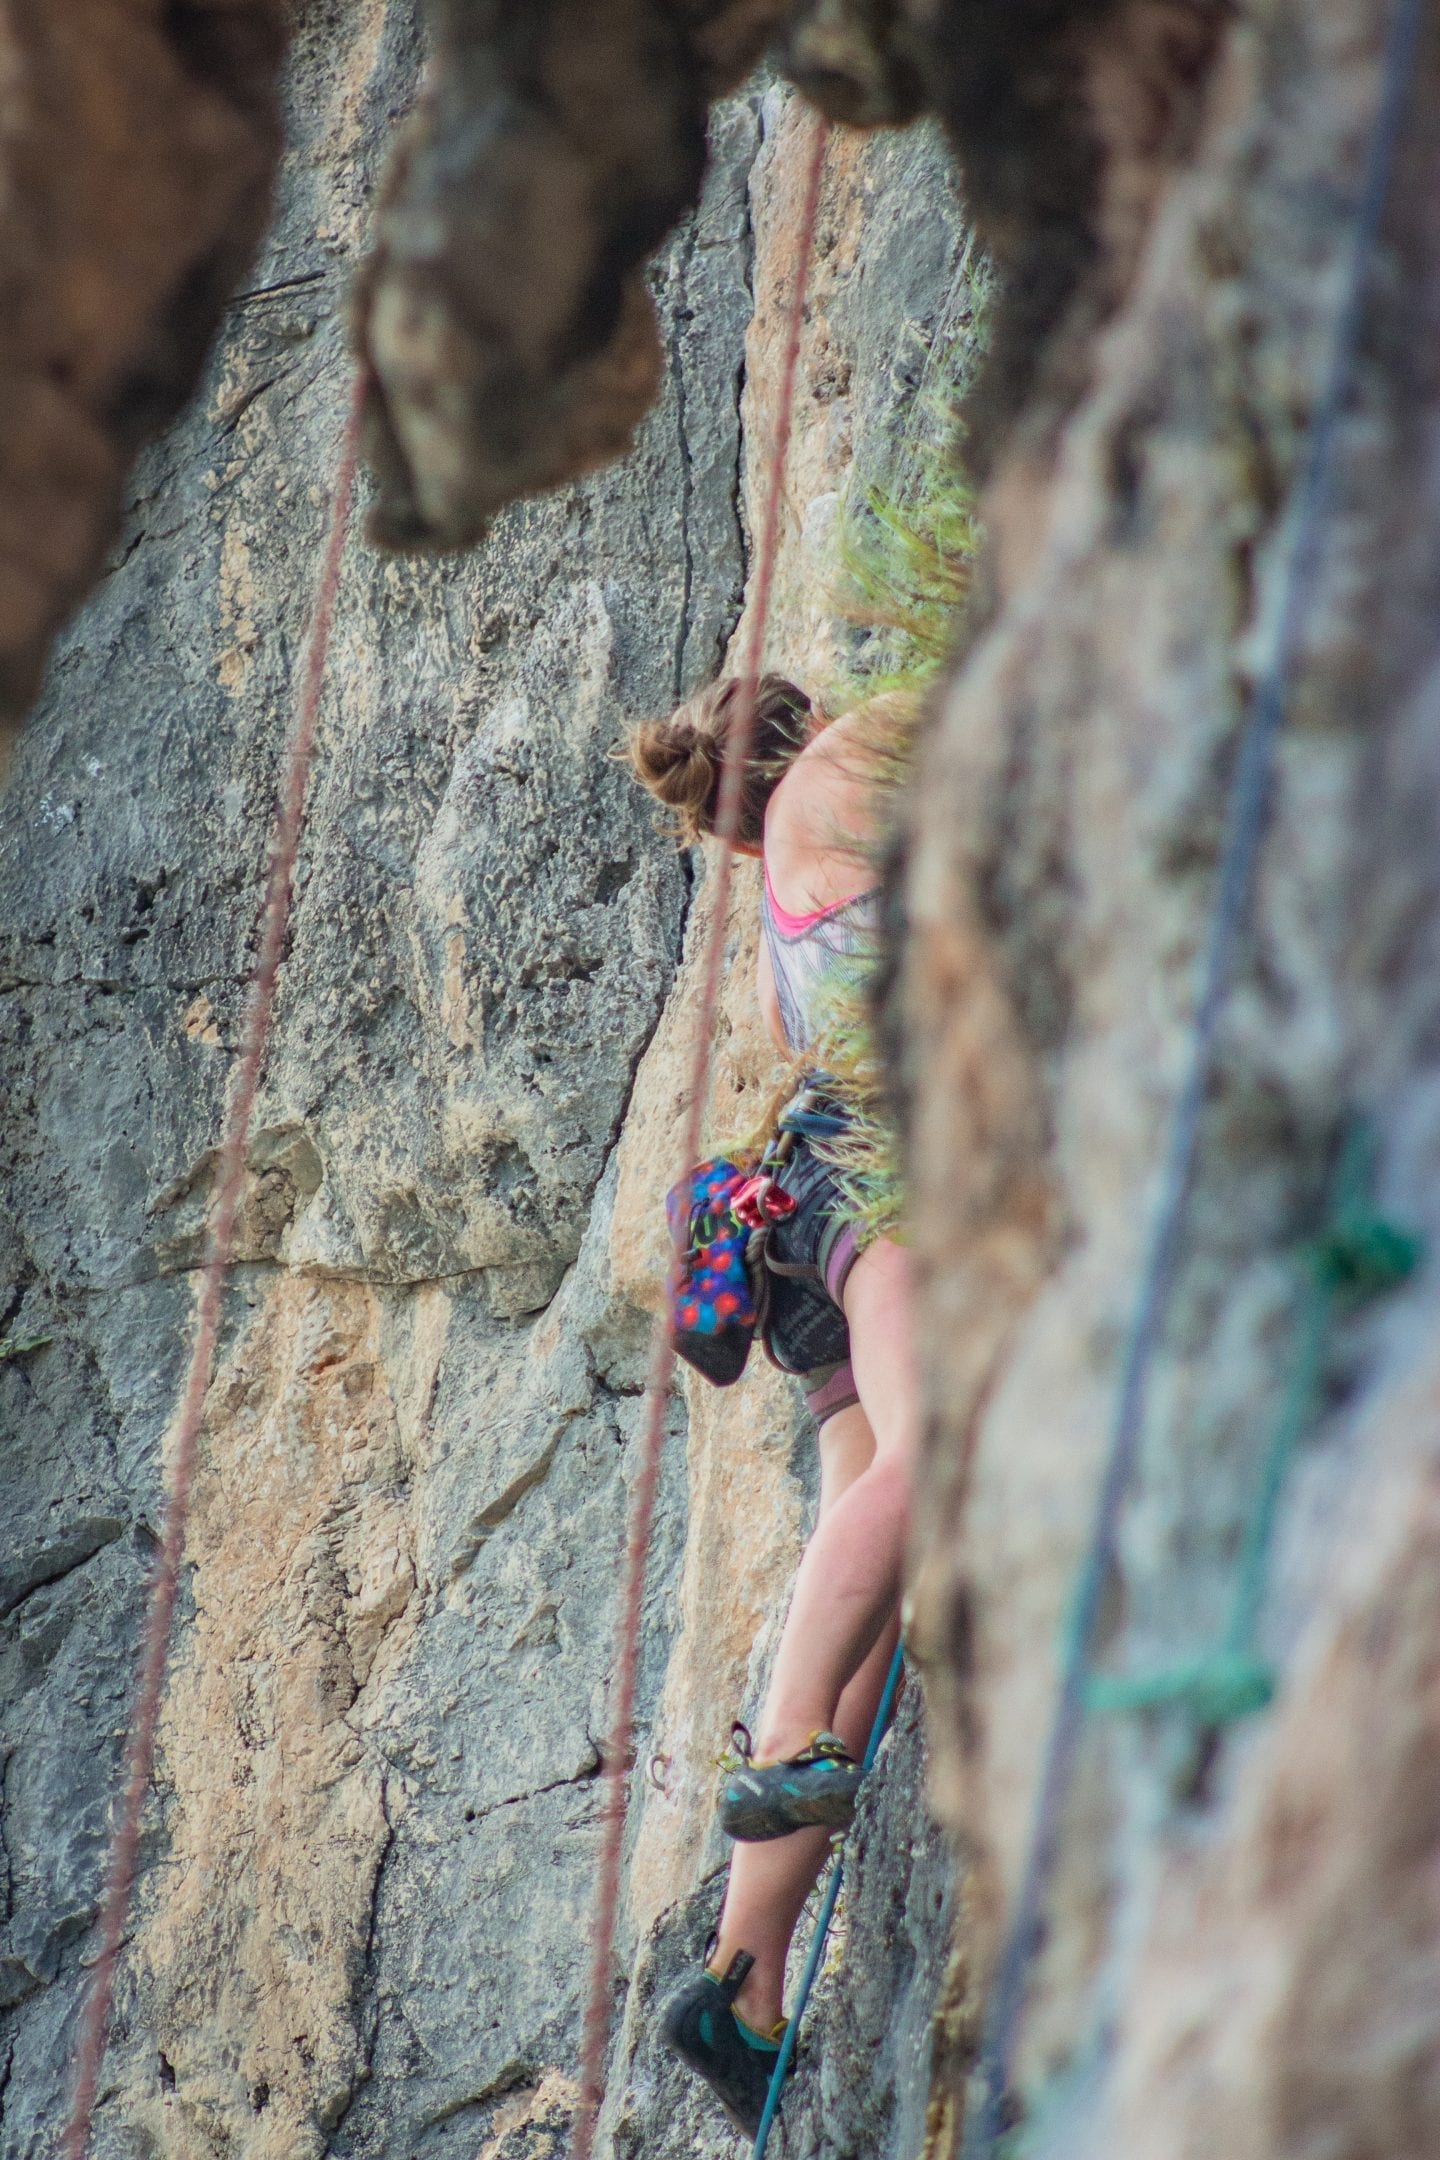 Rock Climbing In Railay, Thailand For The First-Time   Wanderlust Movement   #rockclimbing #thailand #krabi #southeastasia #adventure #extremesports